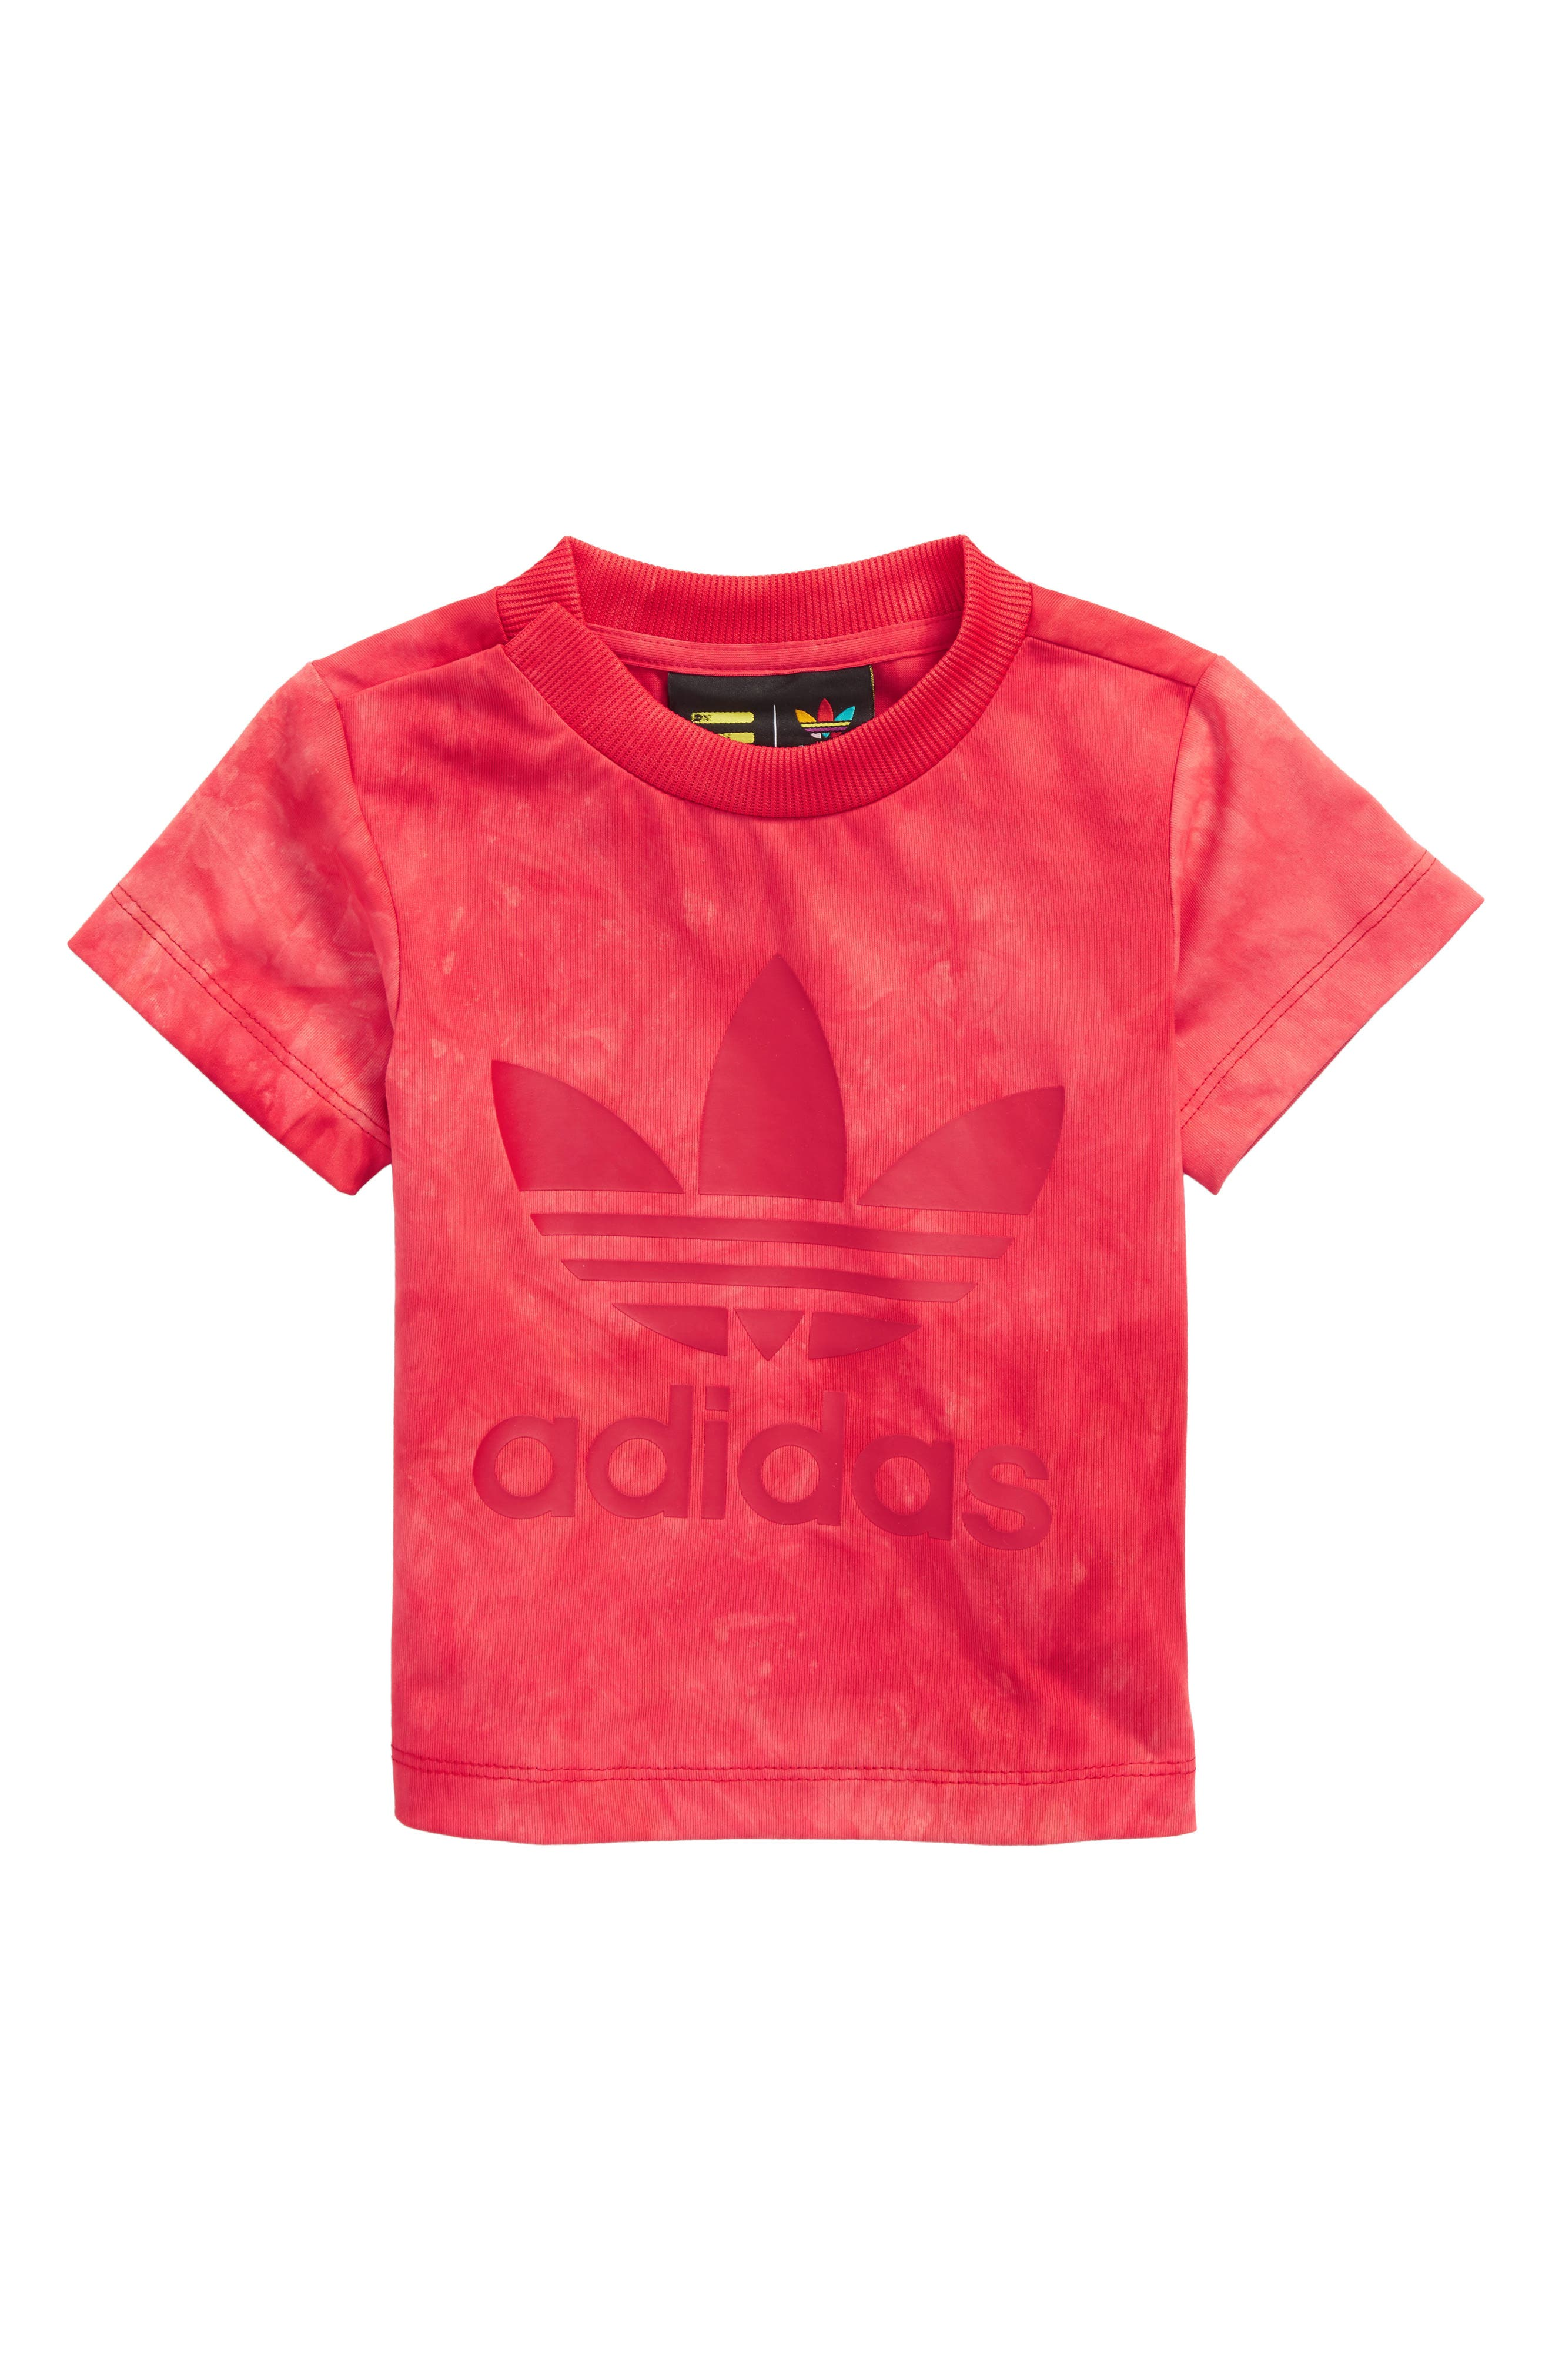 Hu Holi Tee,                             Main thumbnail 1, color,                             SCARLET / WHITE